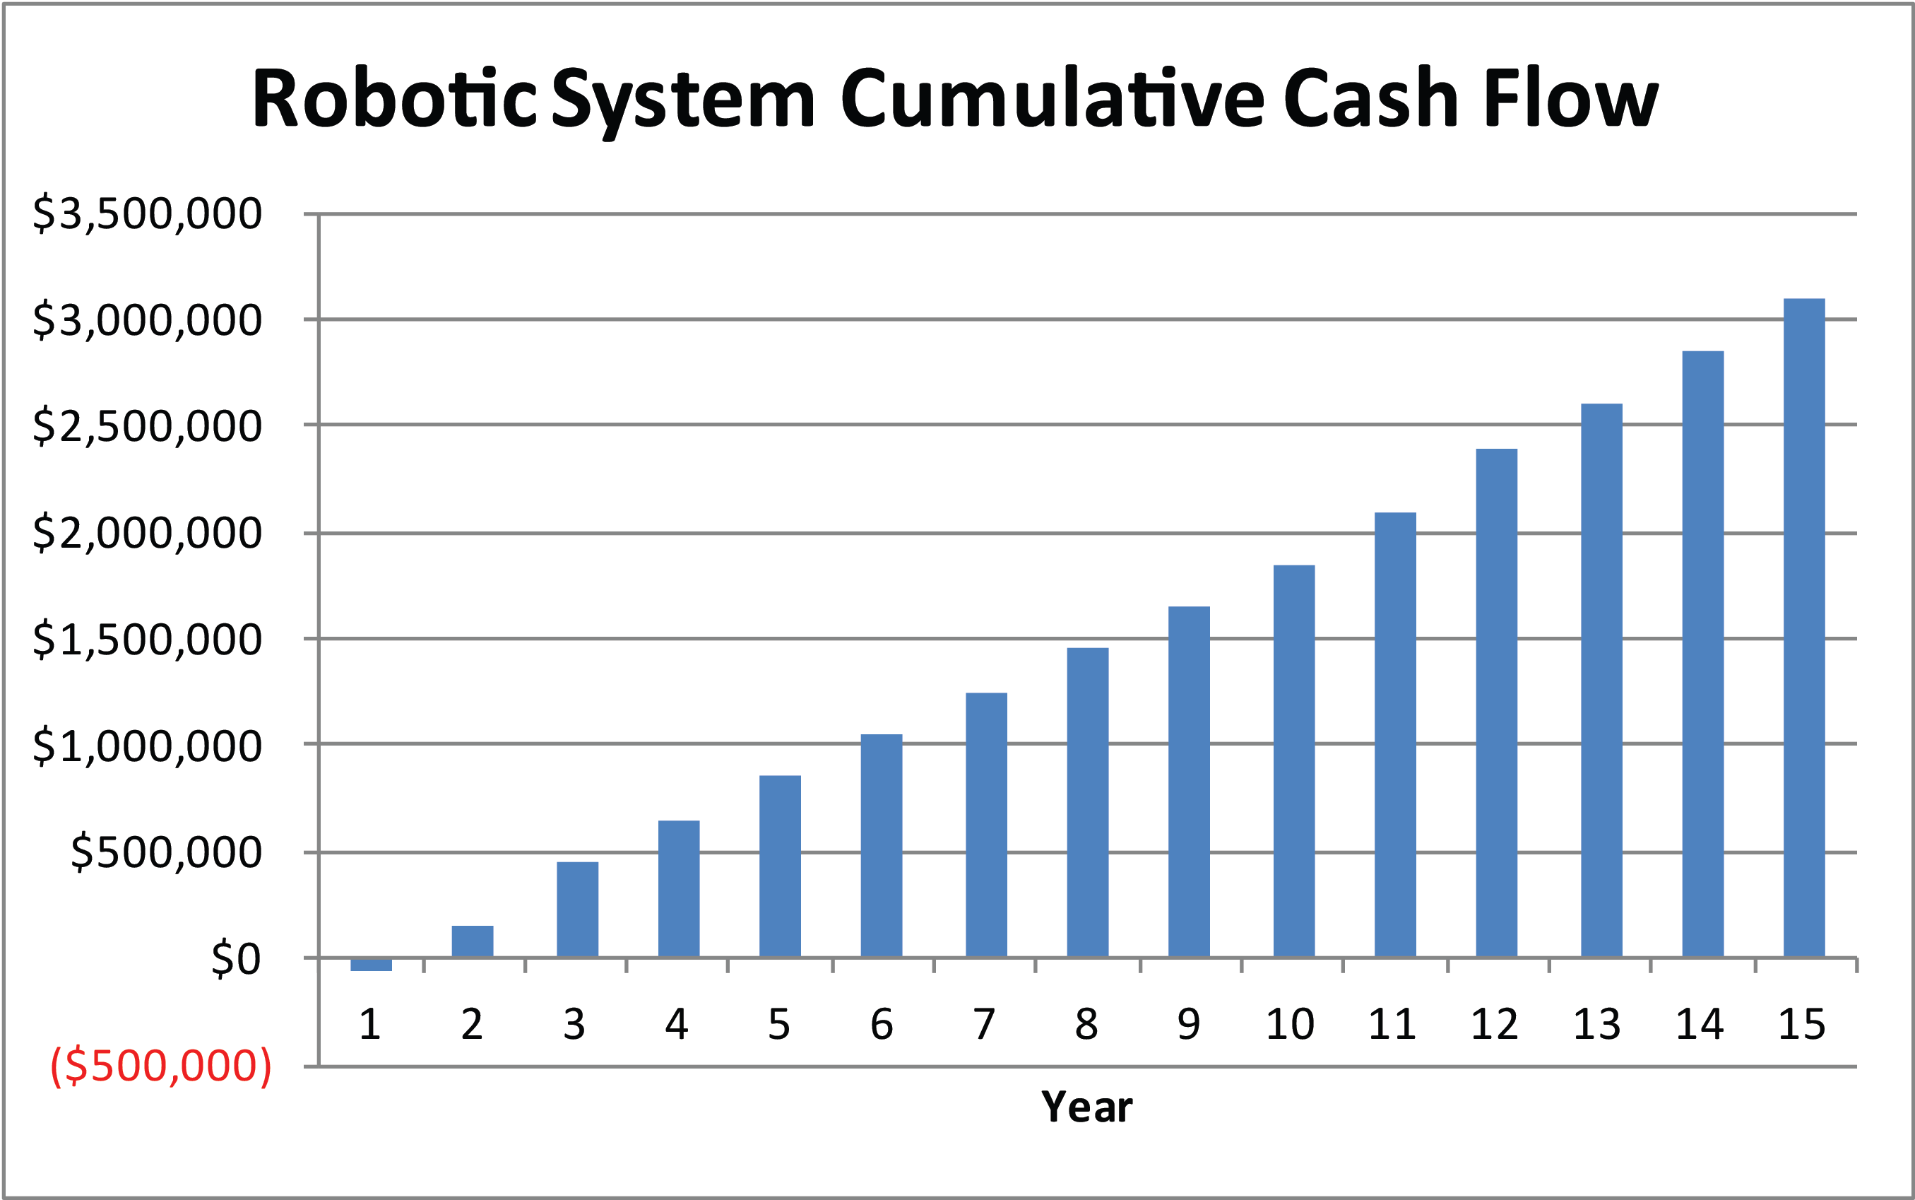 Robotic Cumulative Cash Flow Example Over 15 years